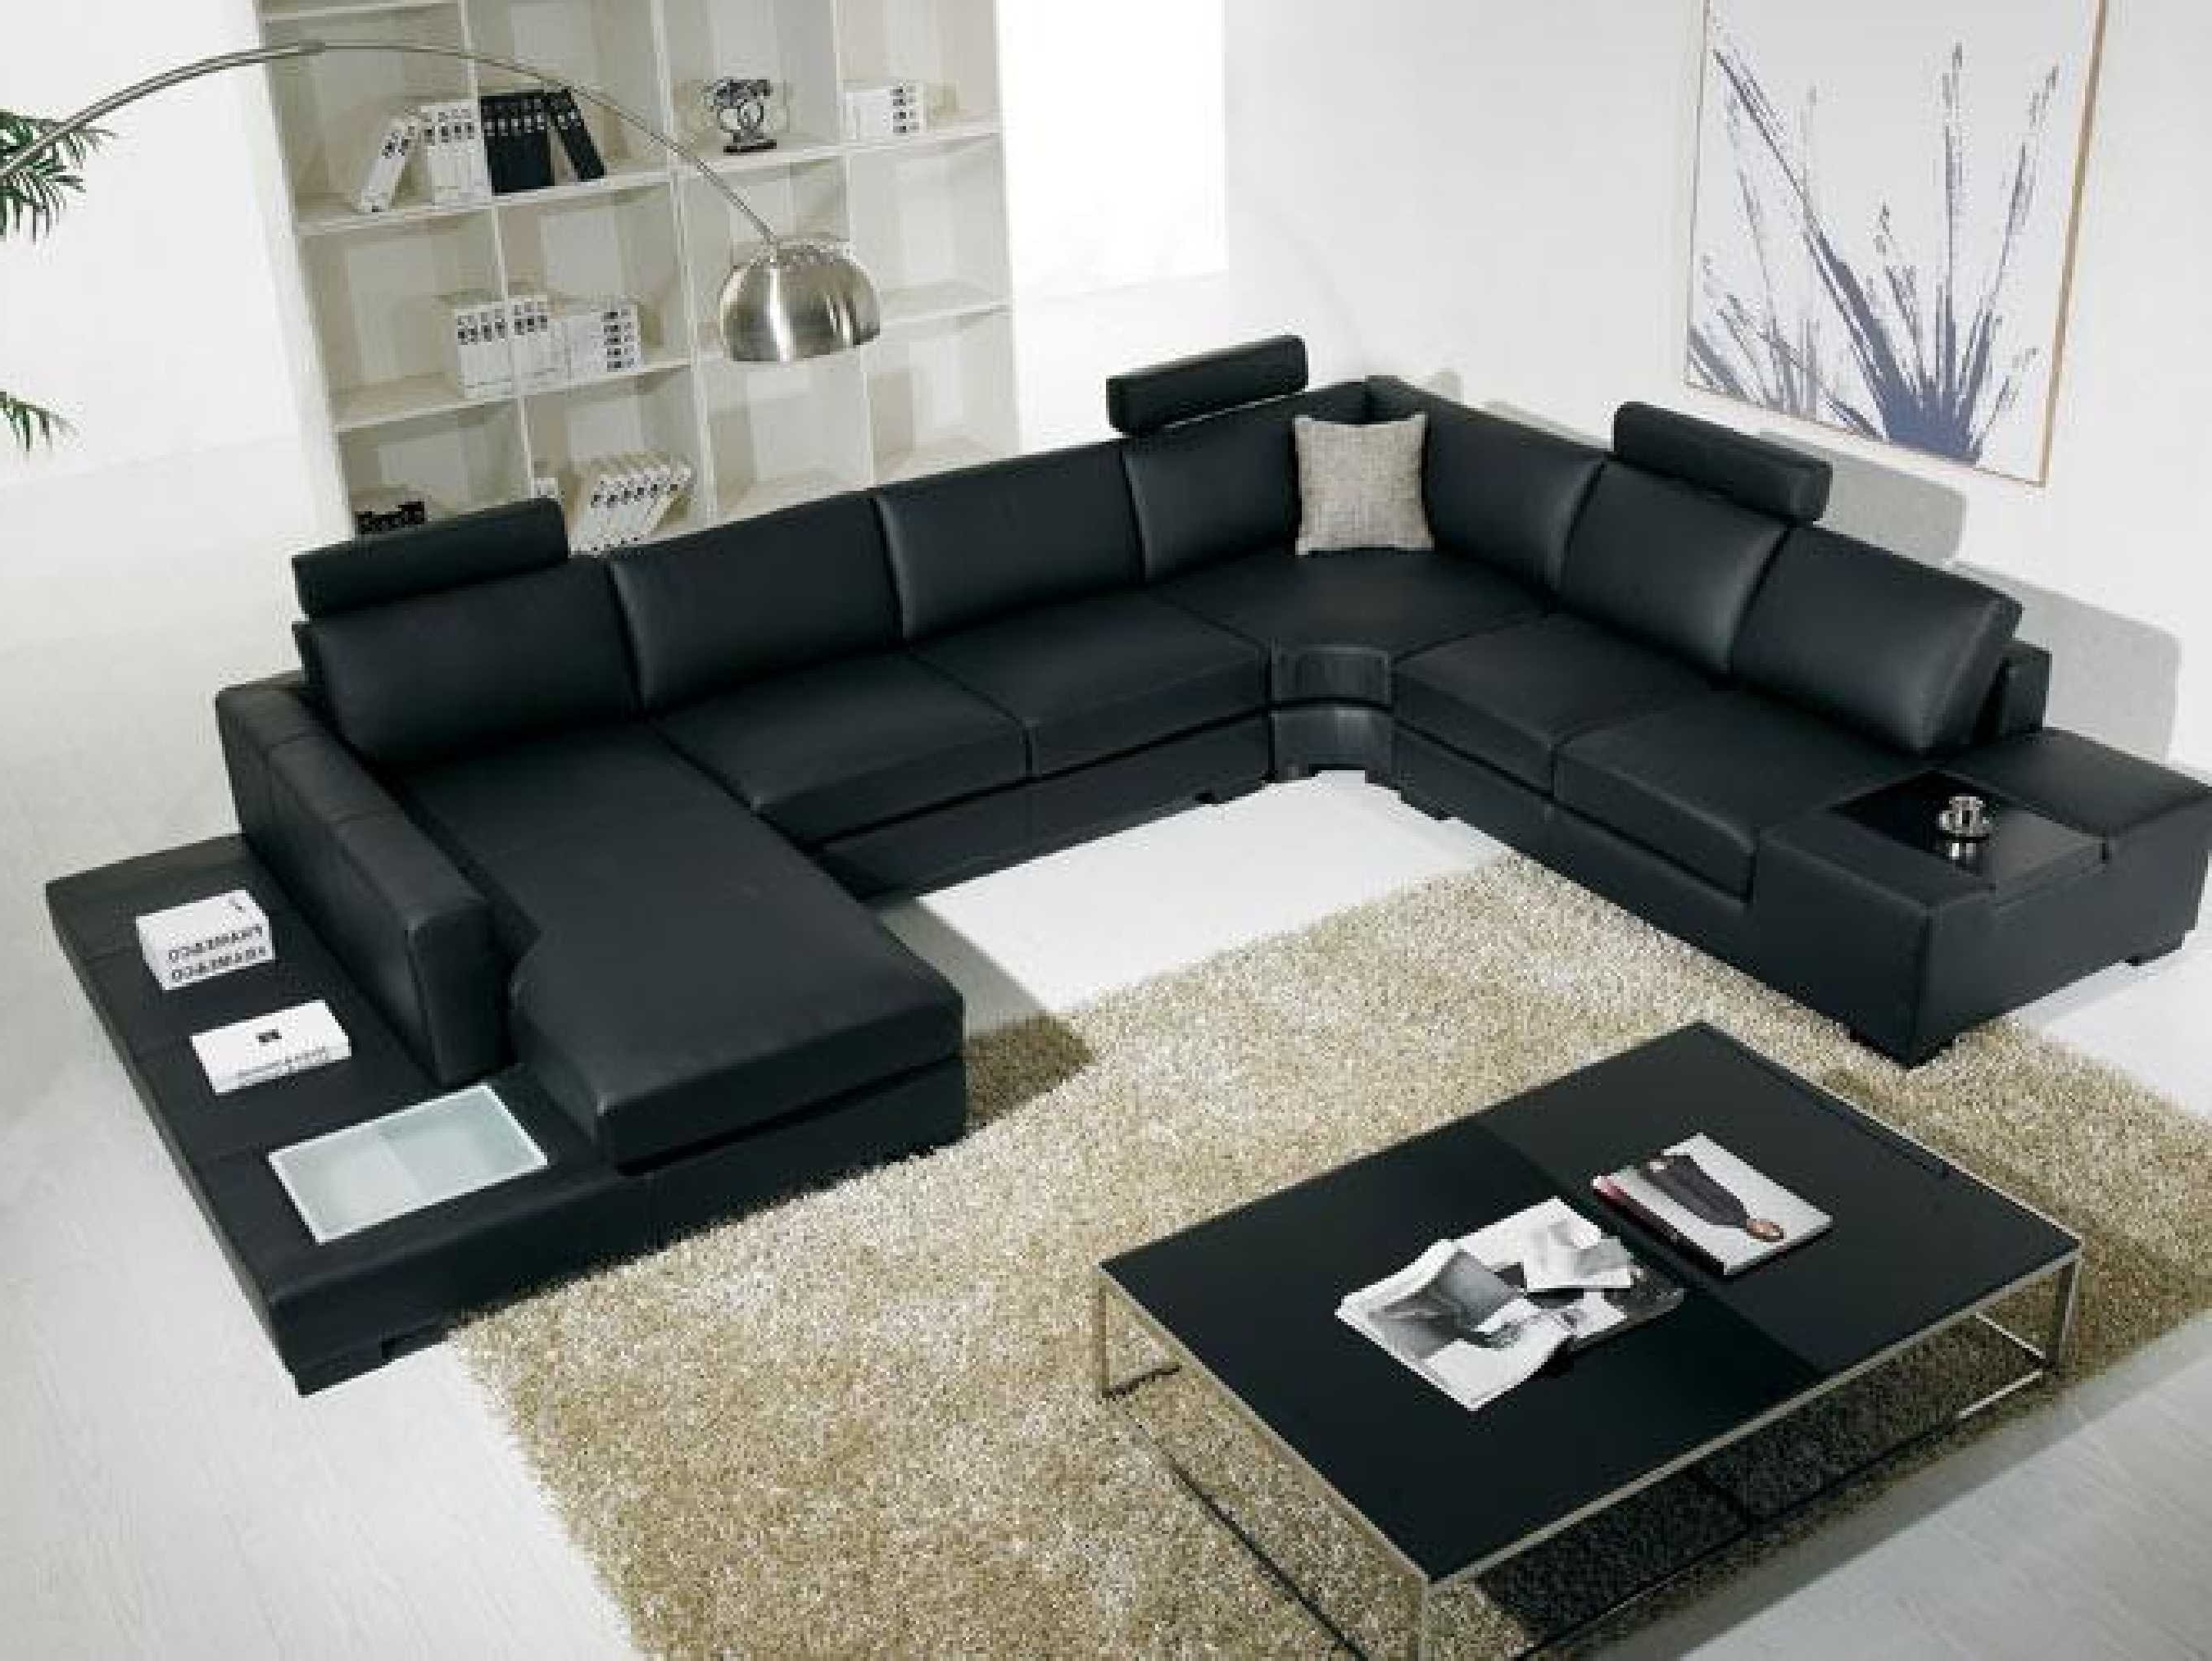 Black Modern Sectional Couches — Home Designs Insight : Beautiful Regarding 2017 On Sale Sectional Sofas (View 2 of 15)